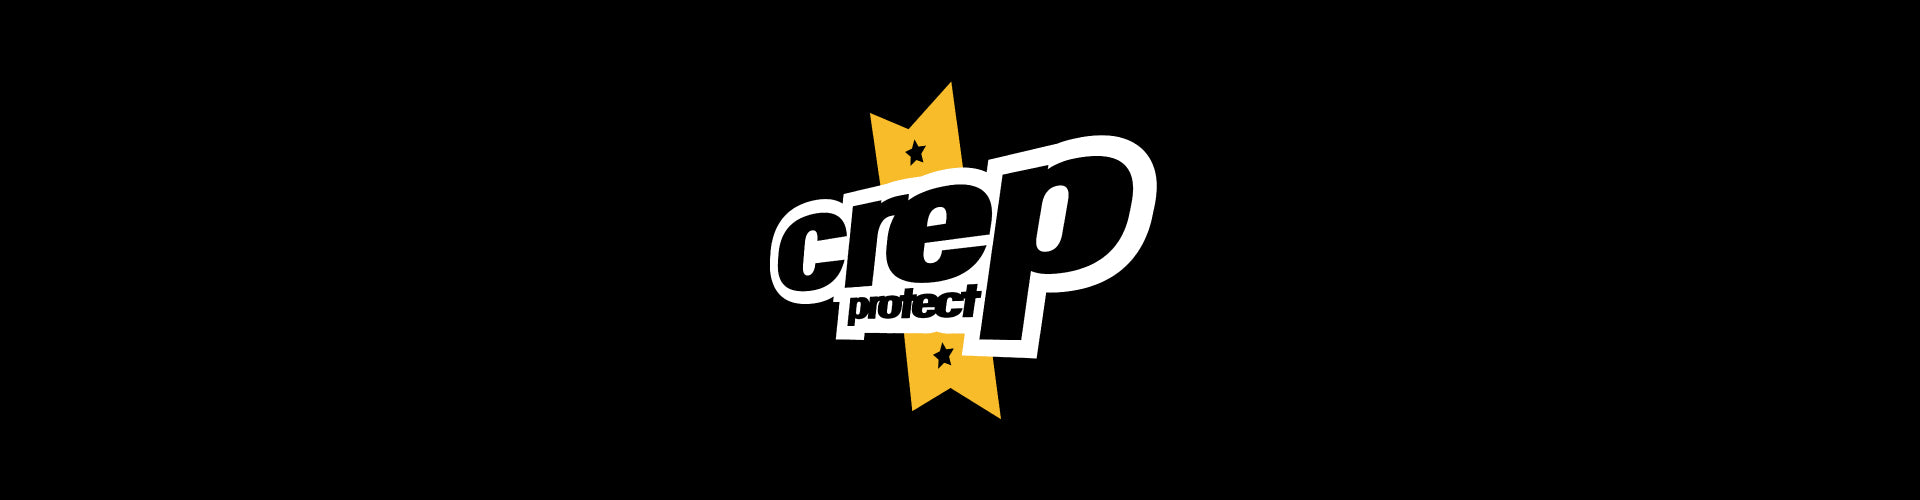 Crep Protect at Crossover